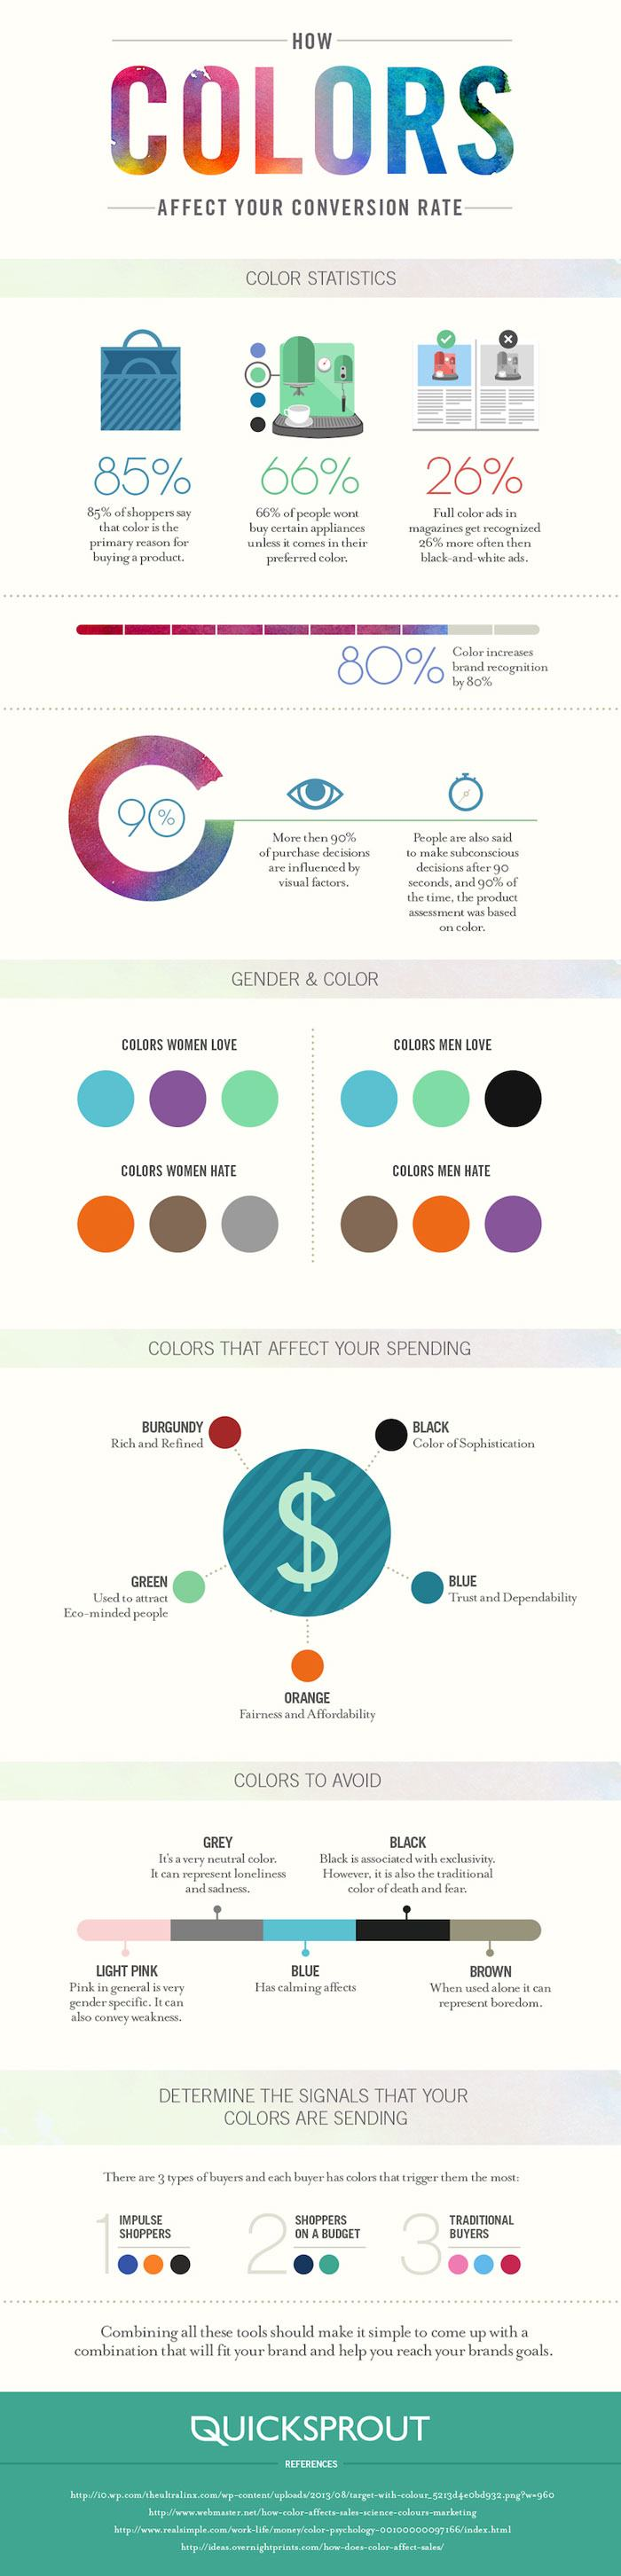 How colours affect conversions